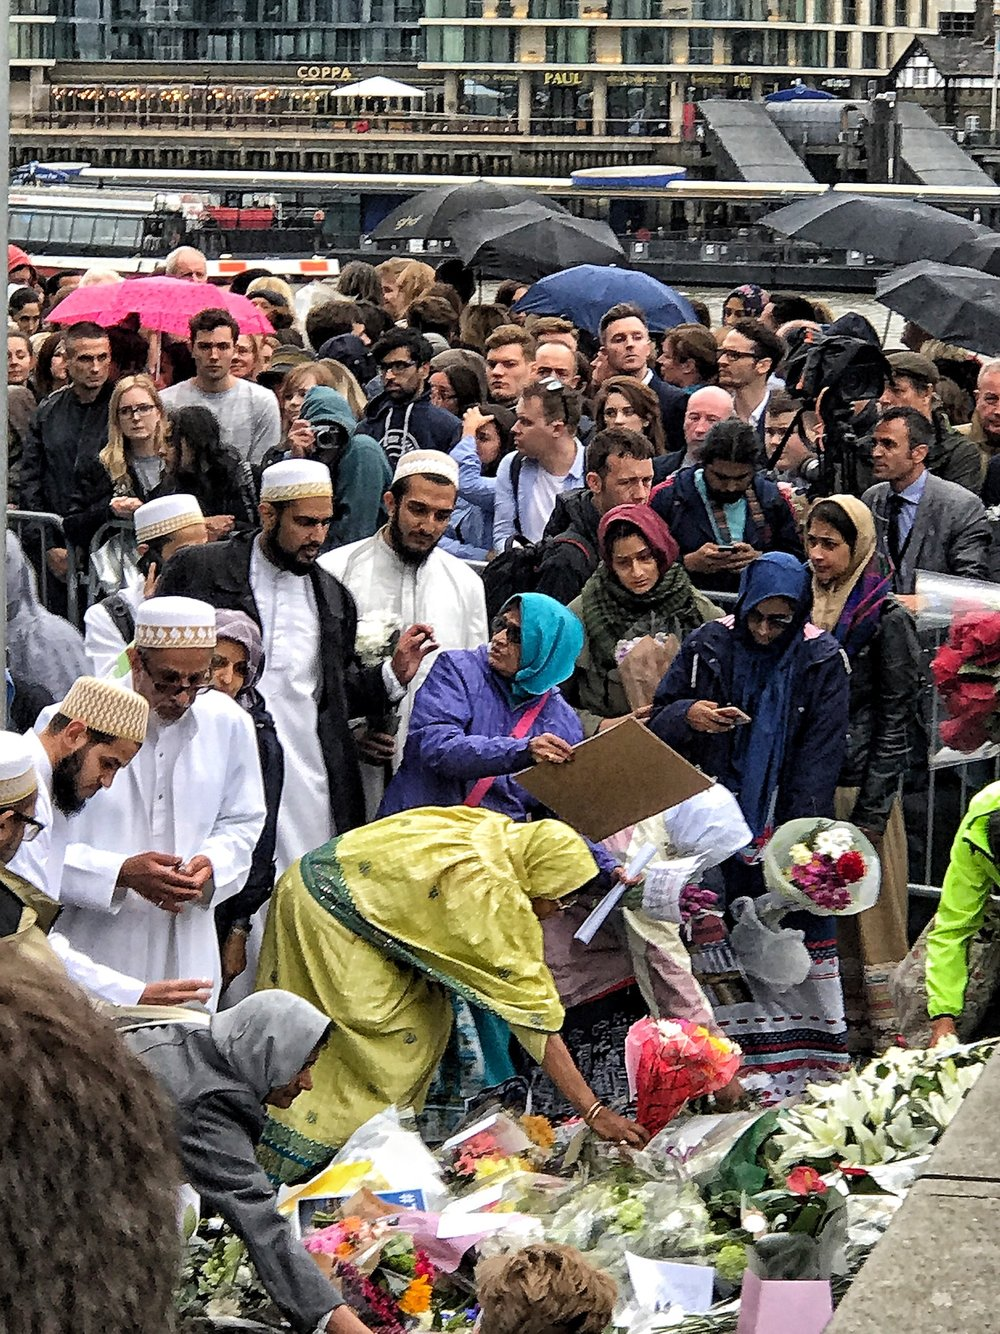 People of all religions laying flowers paying respects their for the victims of the London Bridge Terrorist Attack